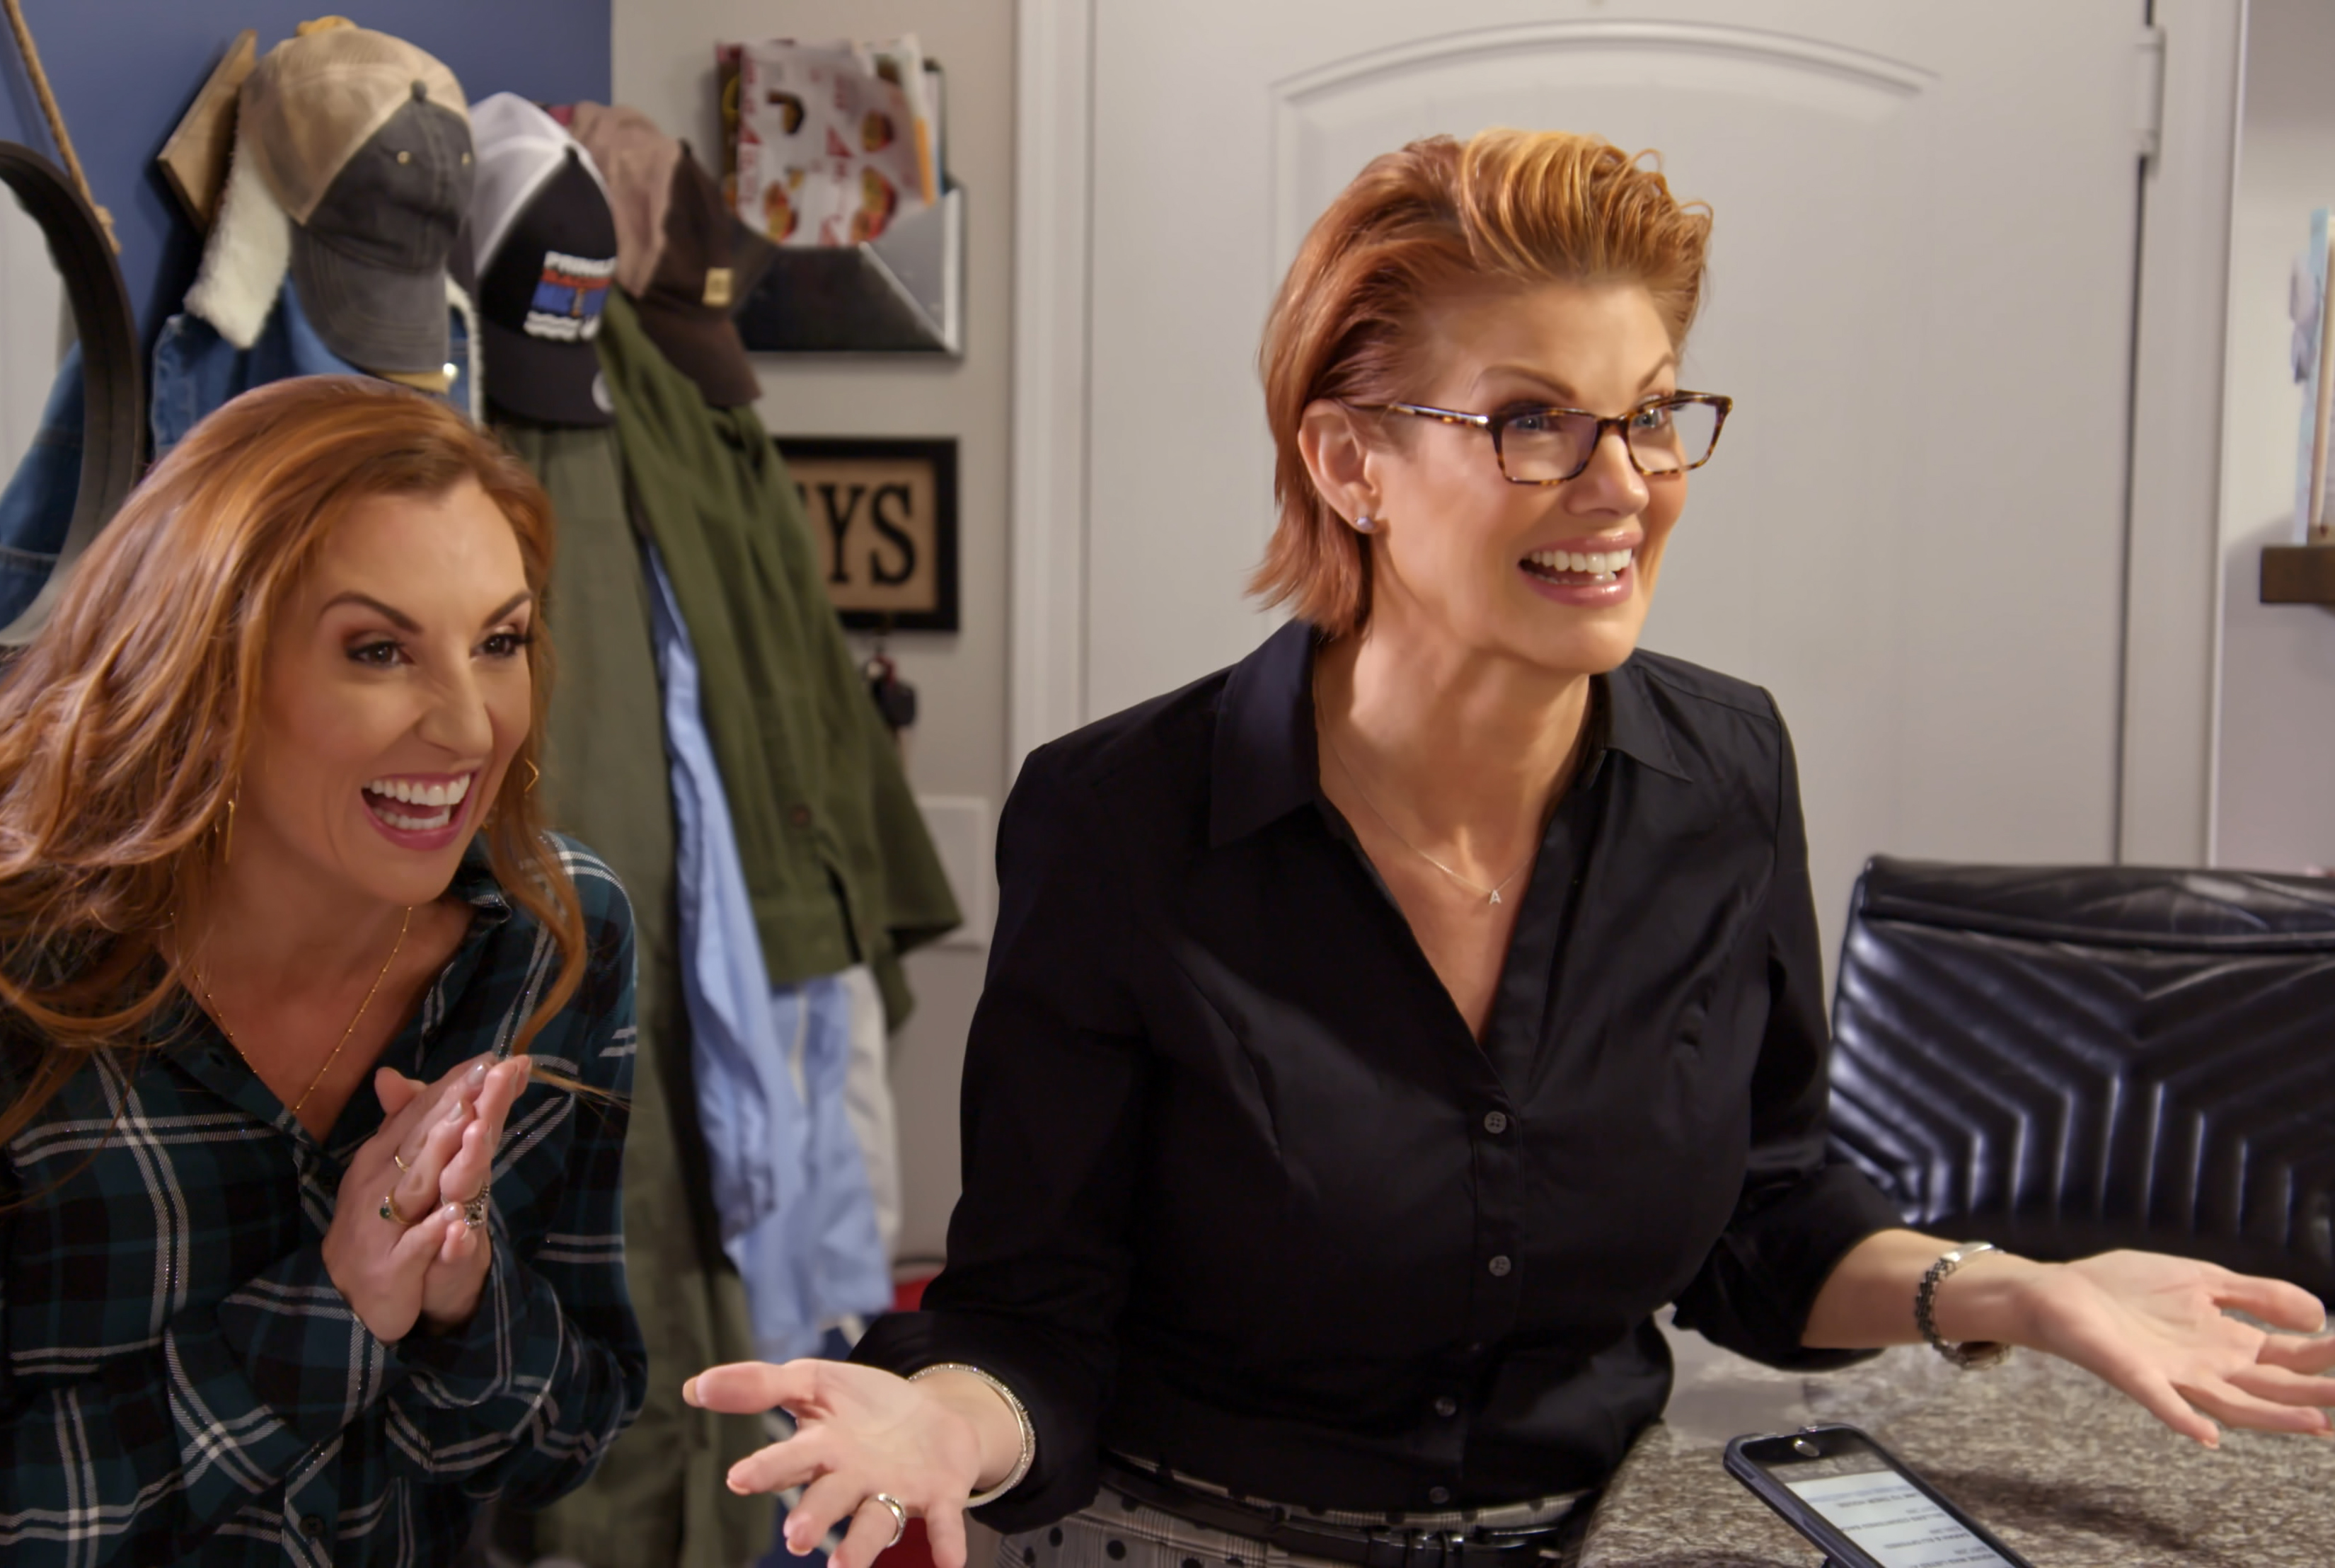 'Marriage or Mortgage' Hosts Nichole Holmes and Sarah Miller Talk Season 2 and Happily Ever Afters